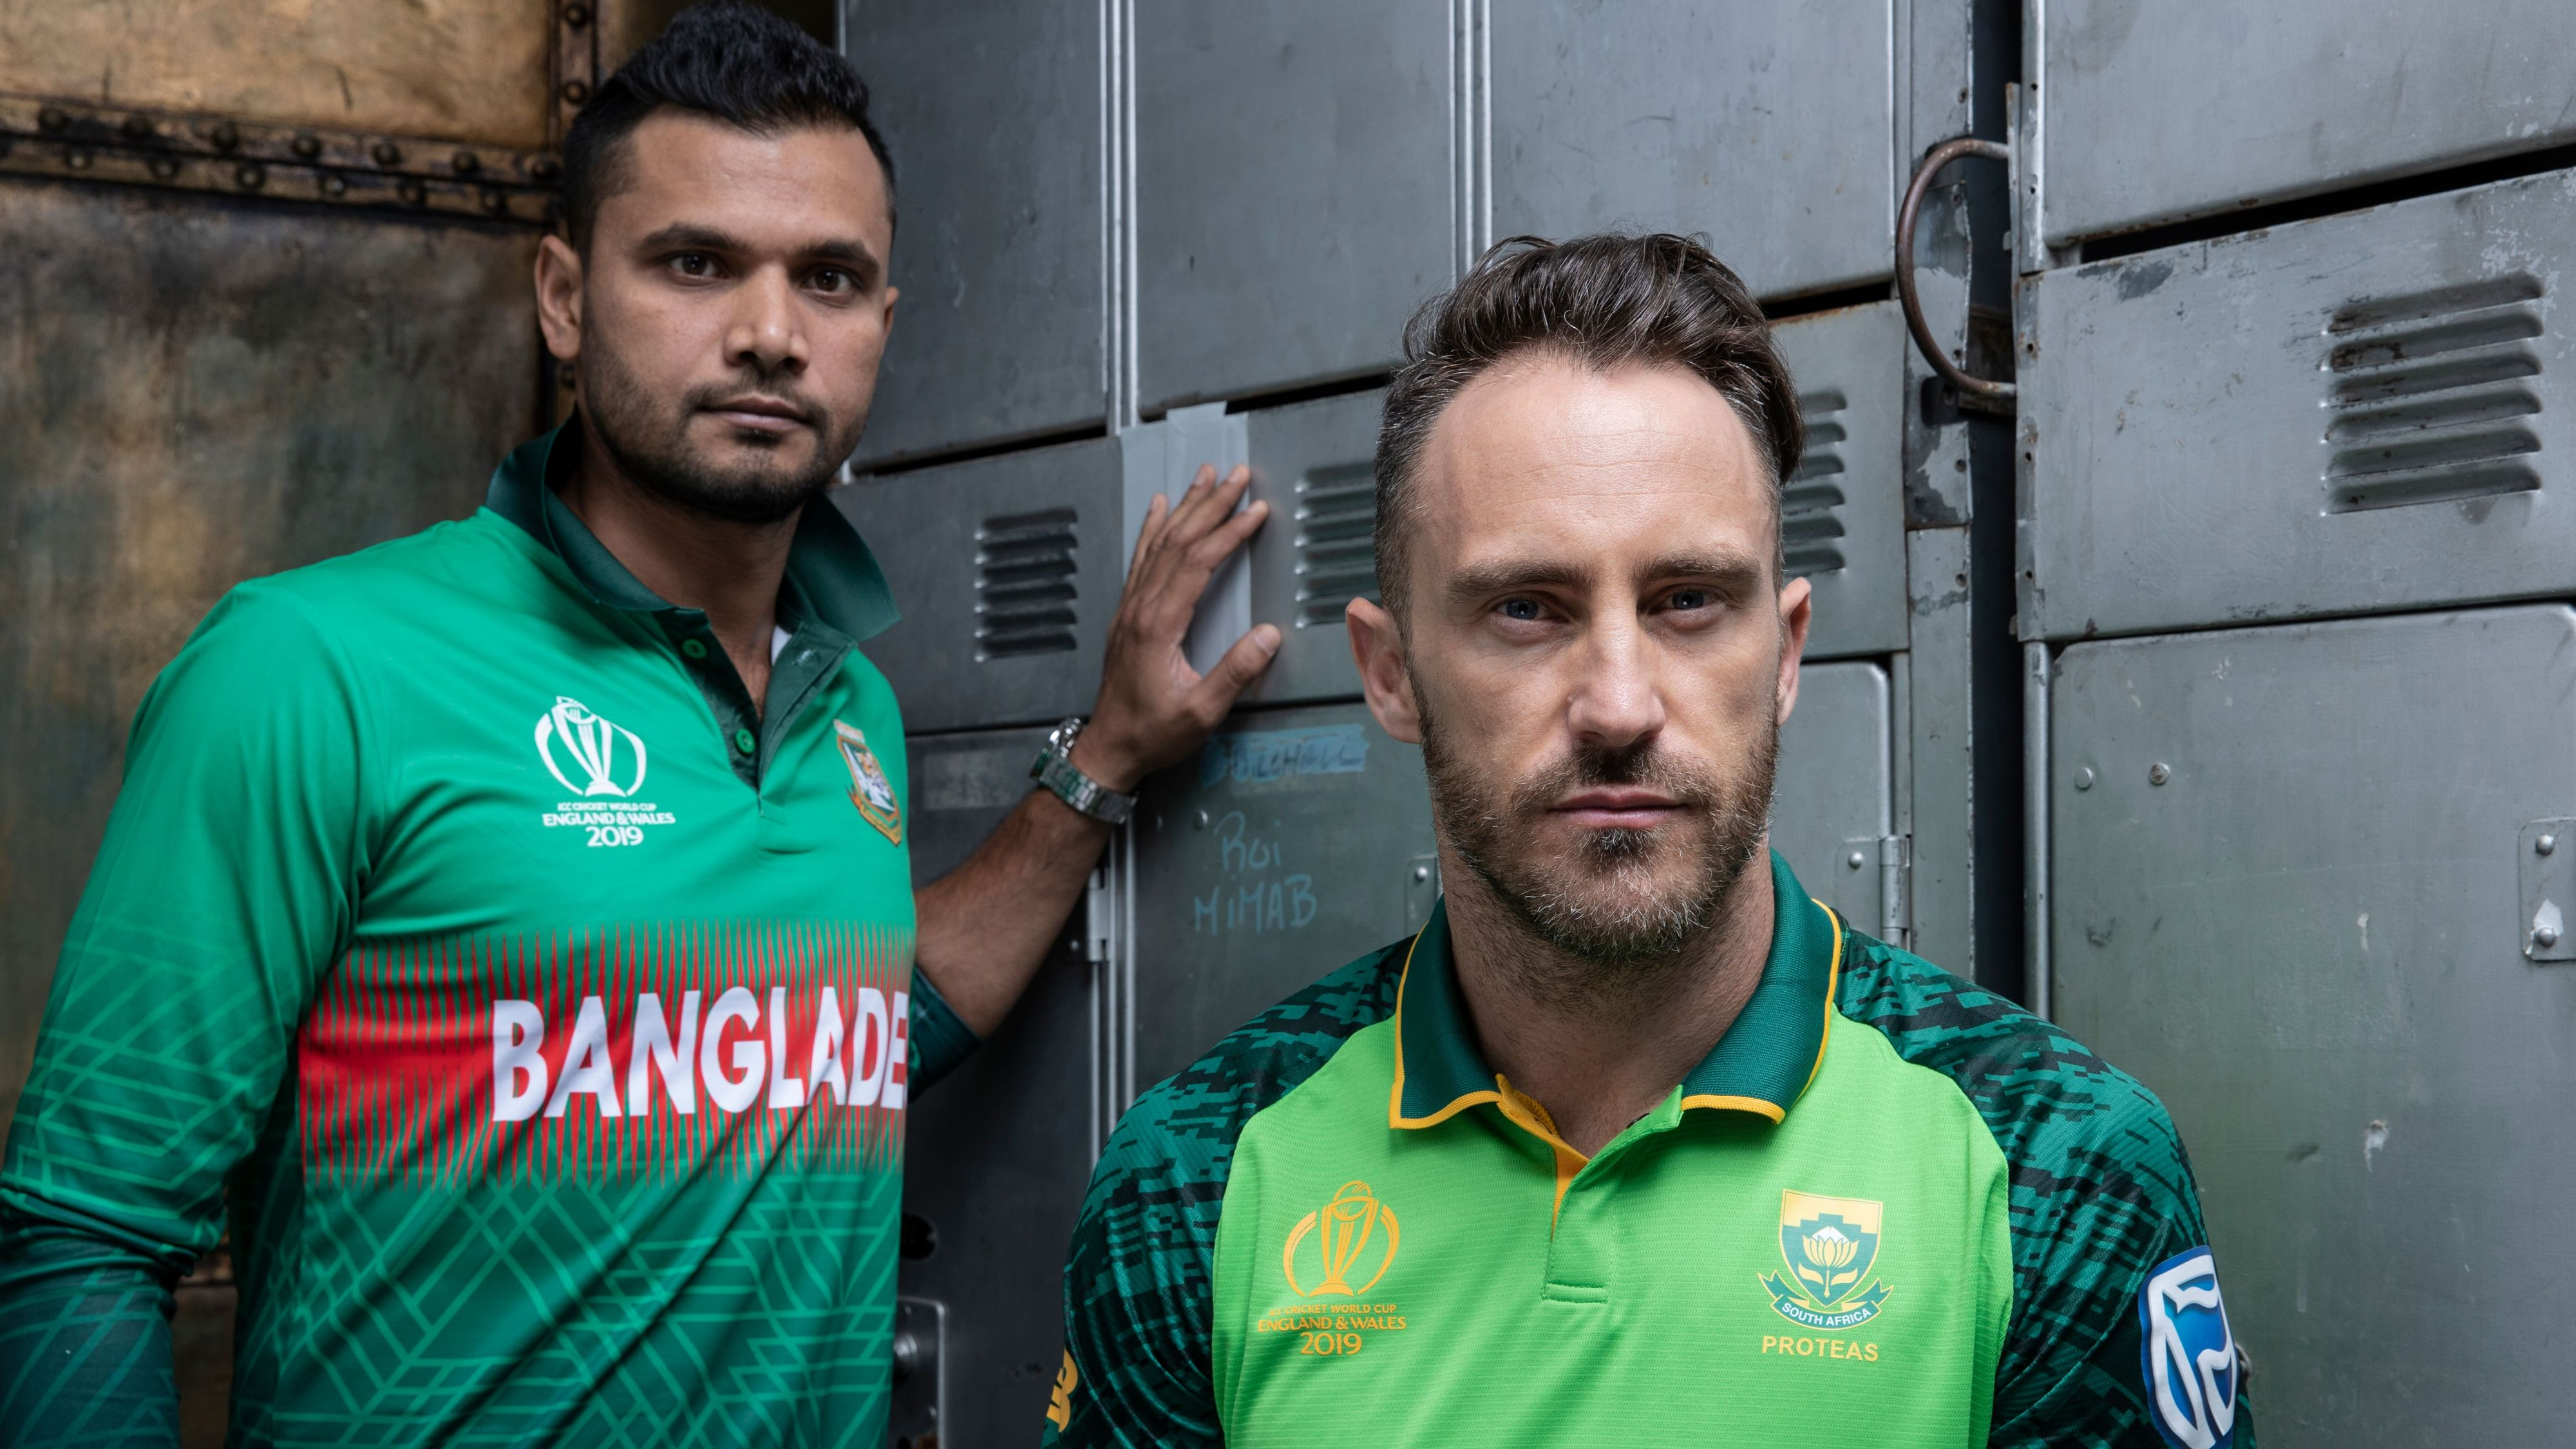 Faf du Plessis described why they lost against Ban